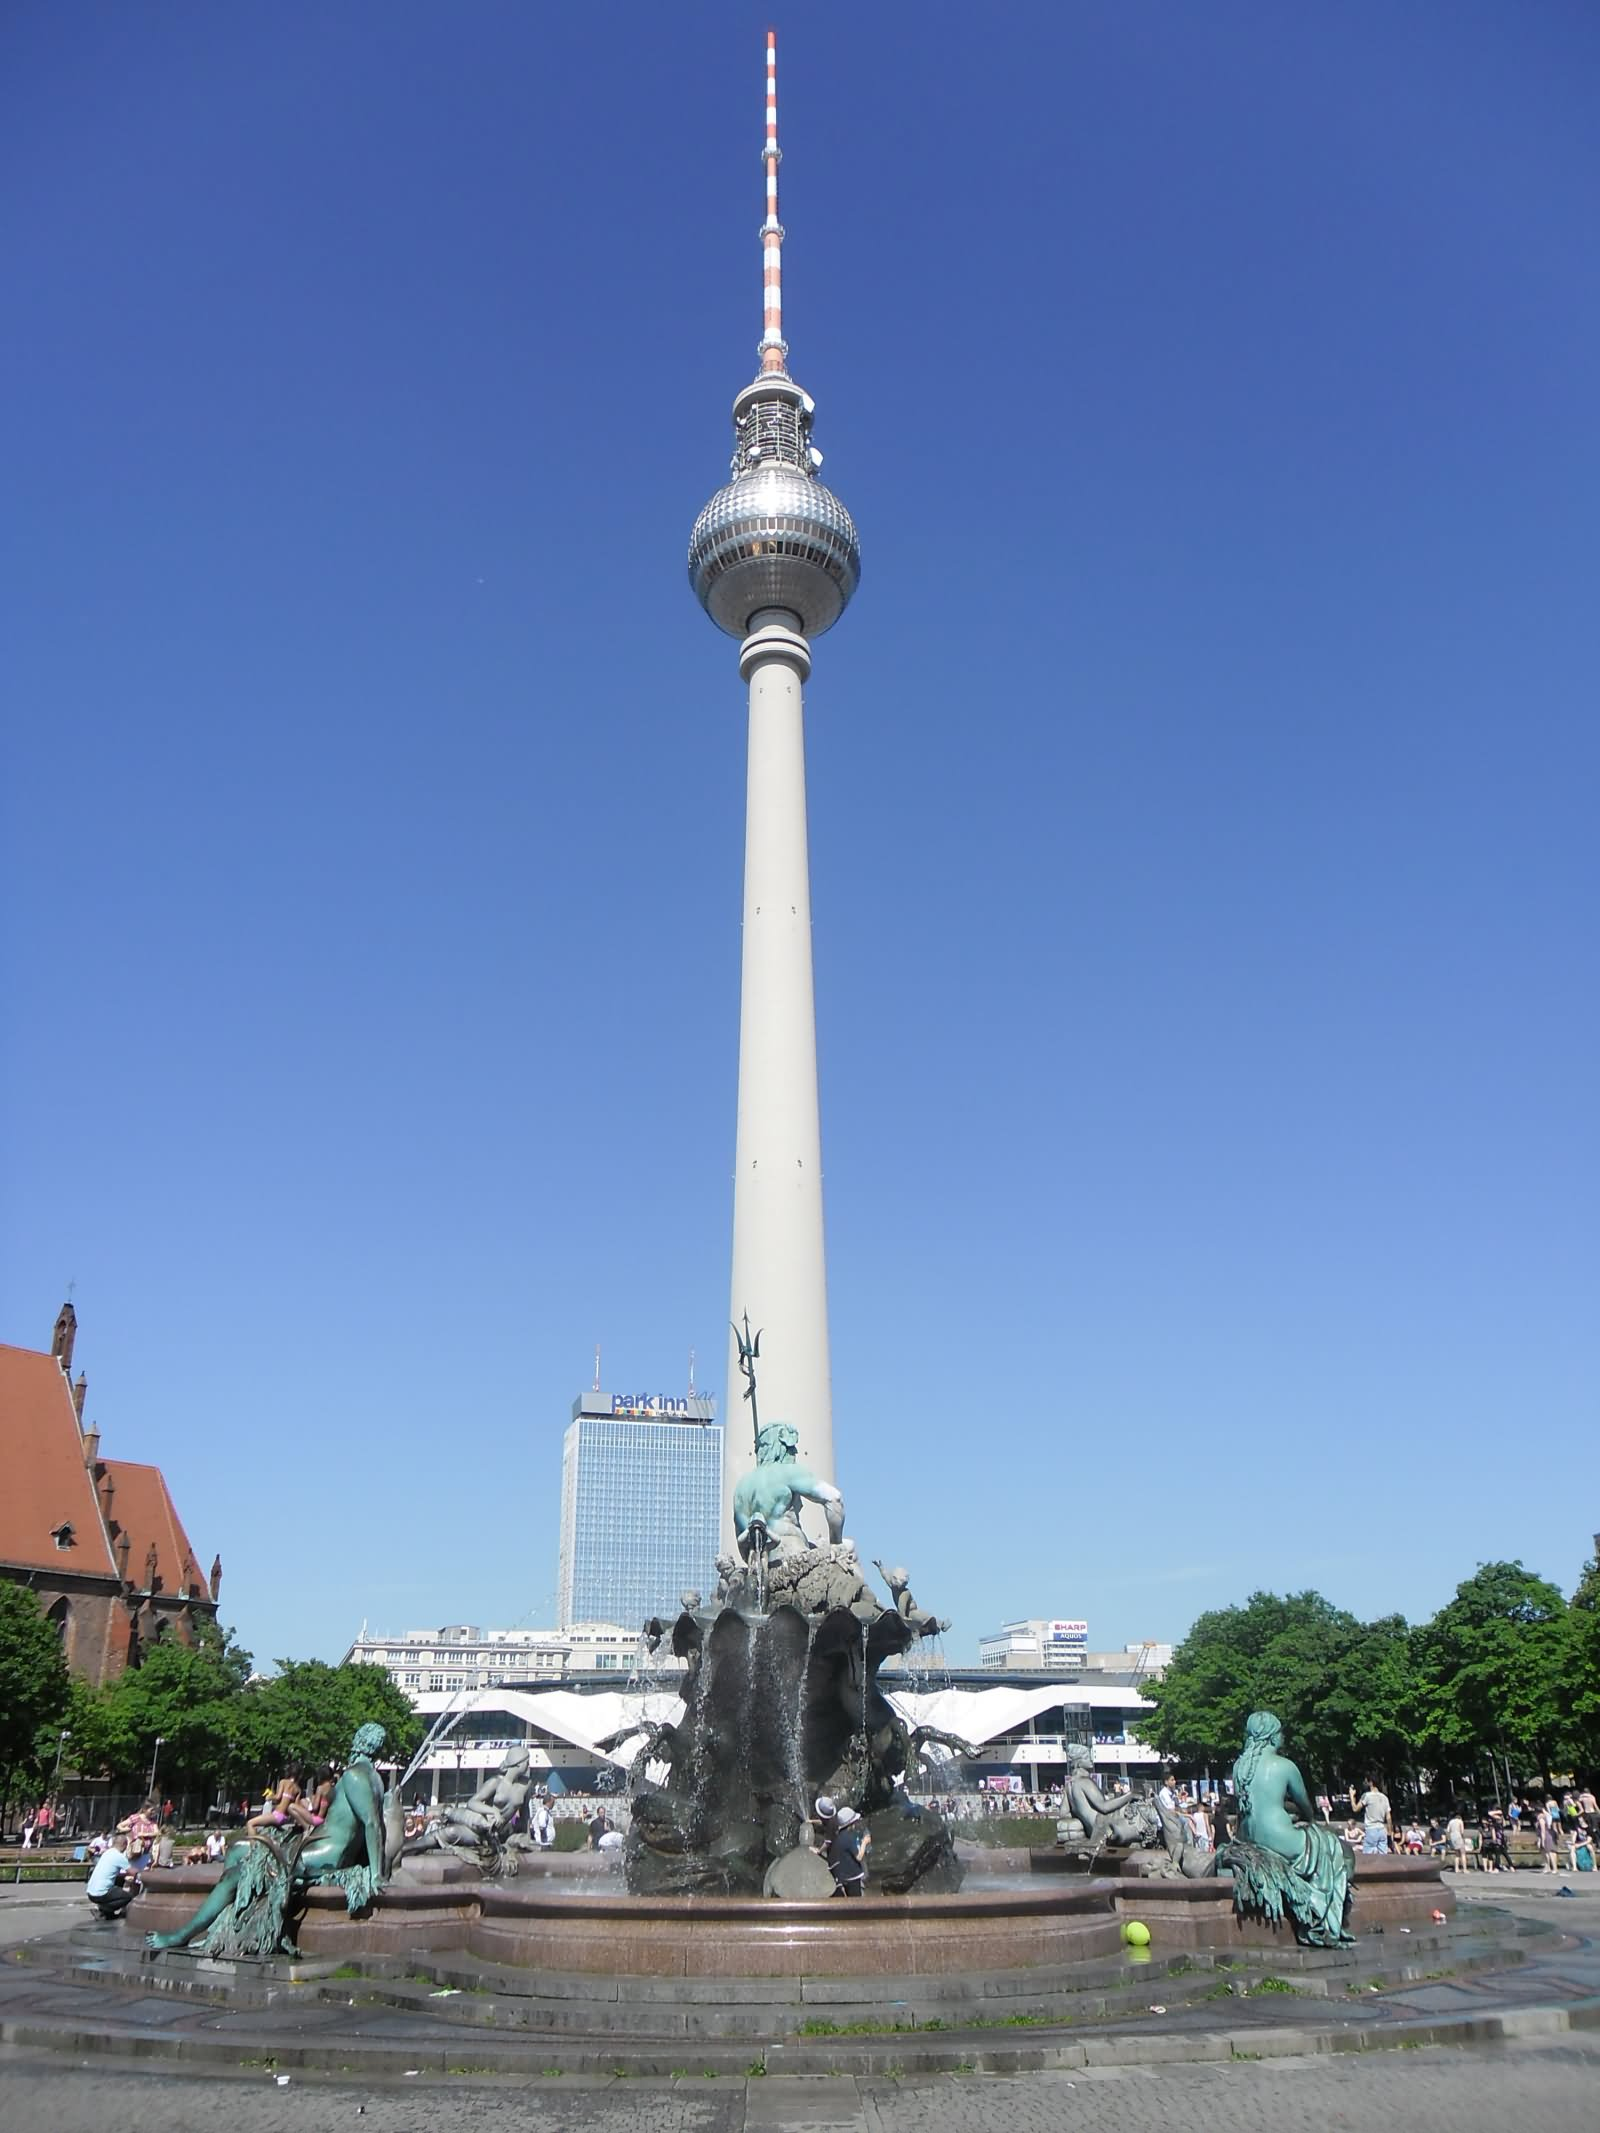 40 Adorable Pictures And Photos Of The Fernsehturm Tower